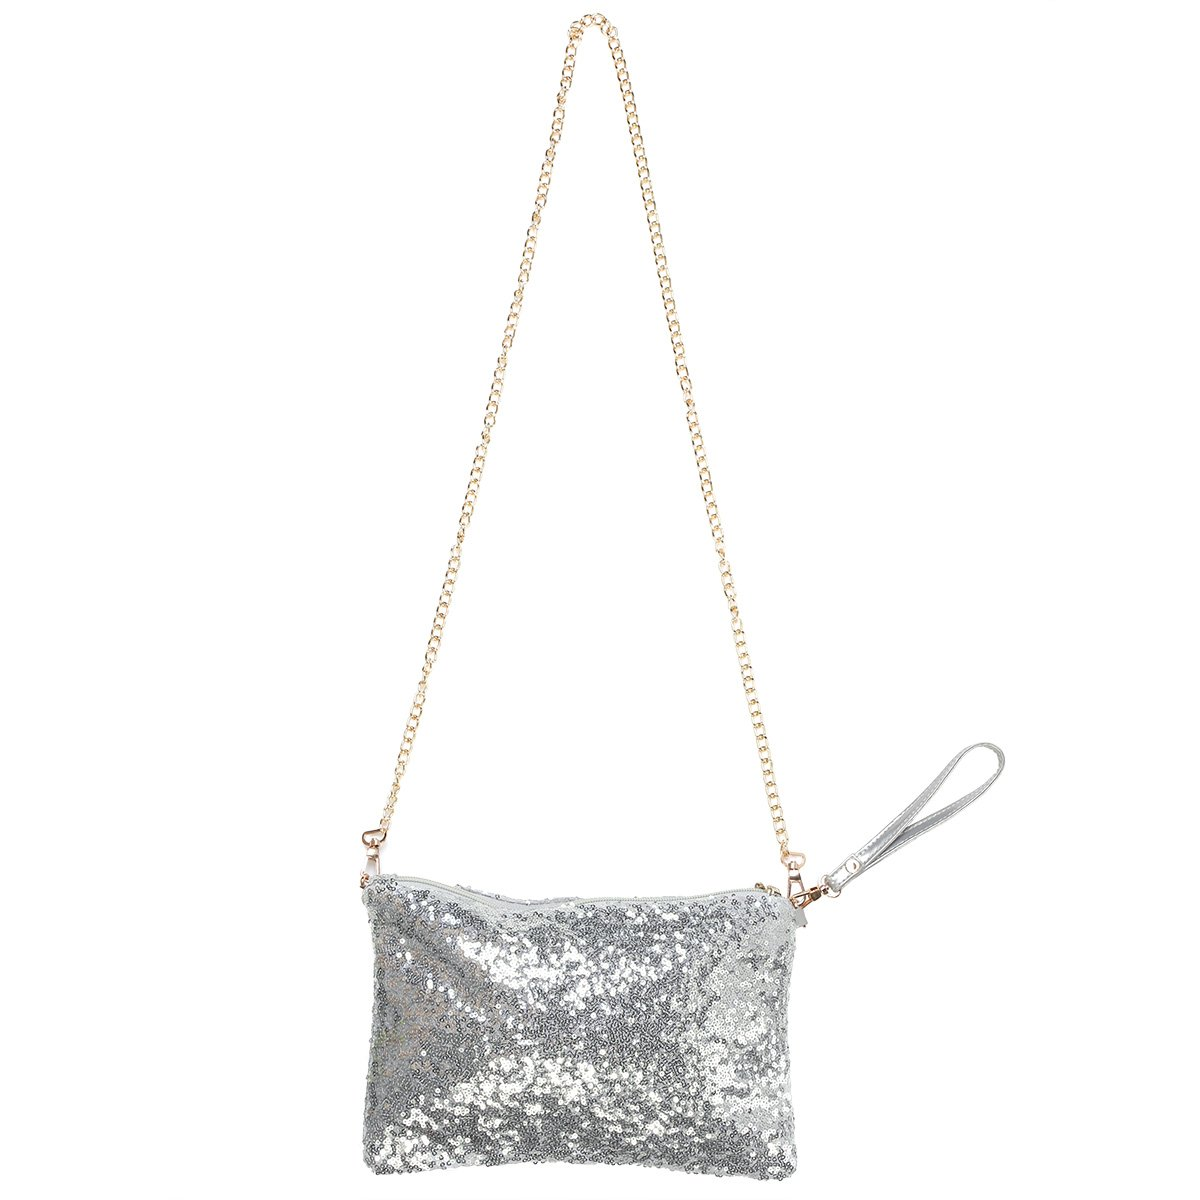 fa63d59f0f Get Quotations · OULII Fashion Glitter Bag Handbag Party Evening Clutch  Shoulder Bag for Women (Silver)